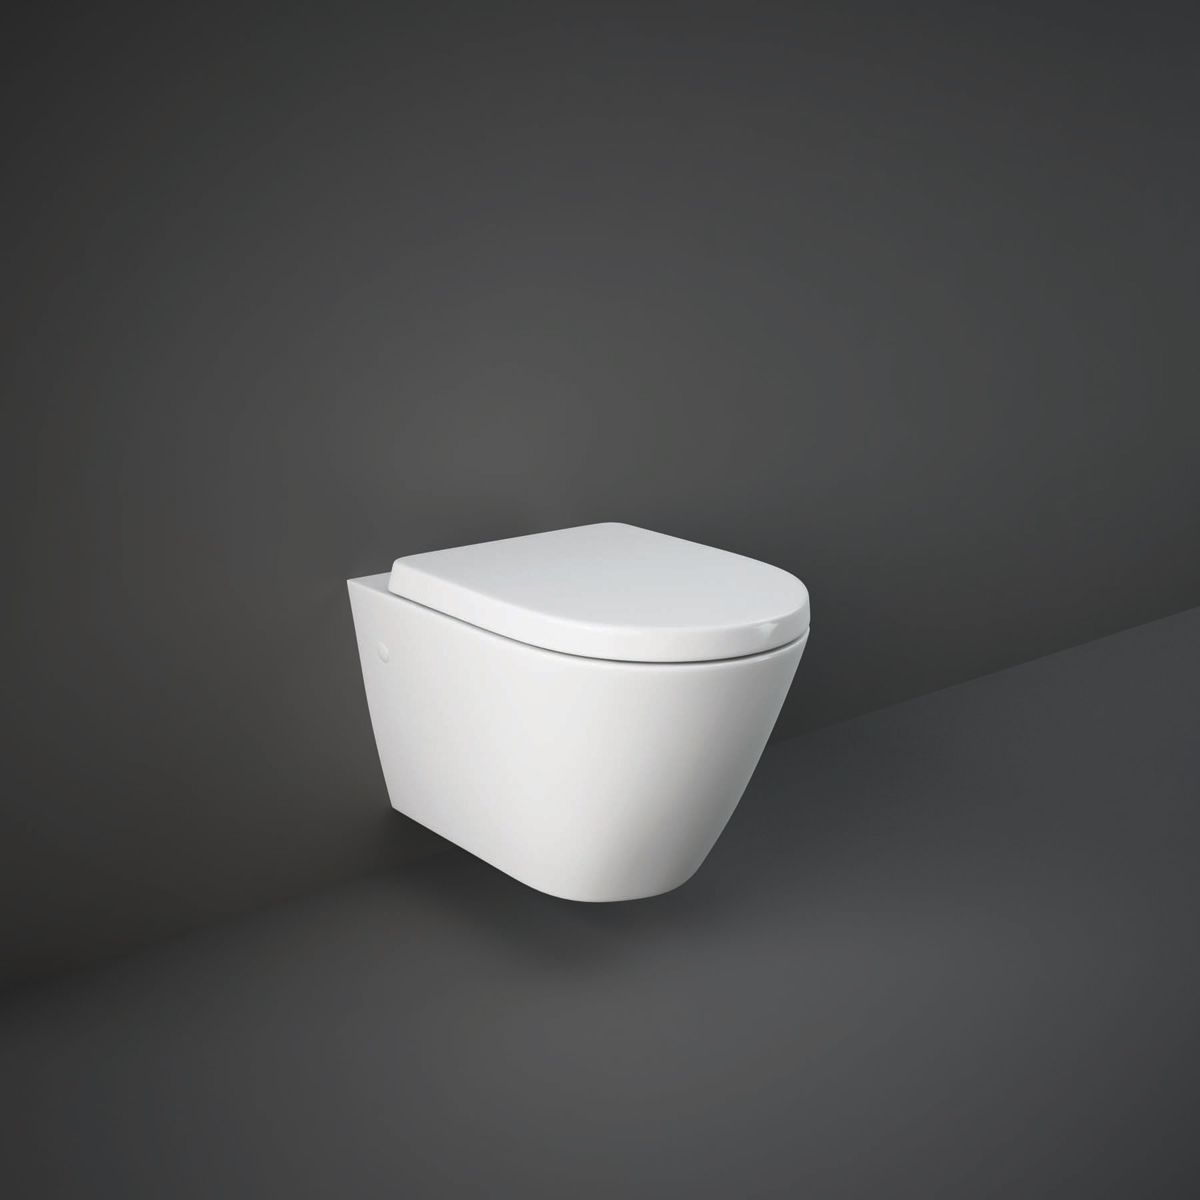 RAK Resort Wall Hung Toilet with Wrap Over Soft Close Seat